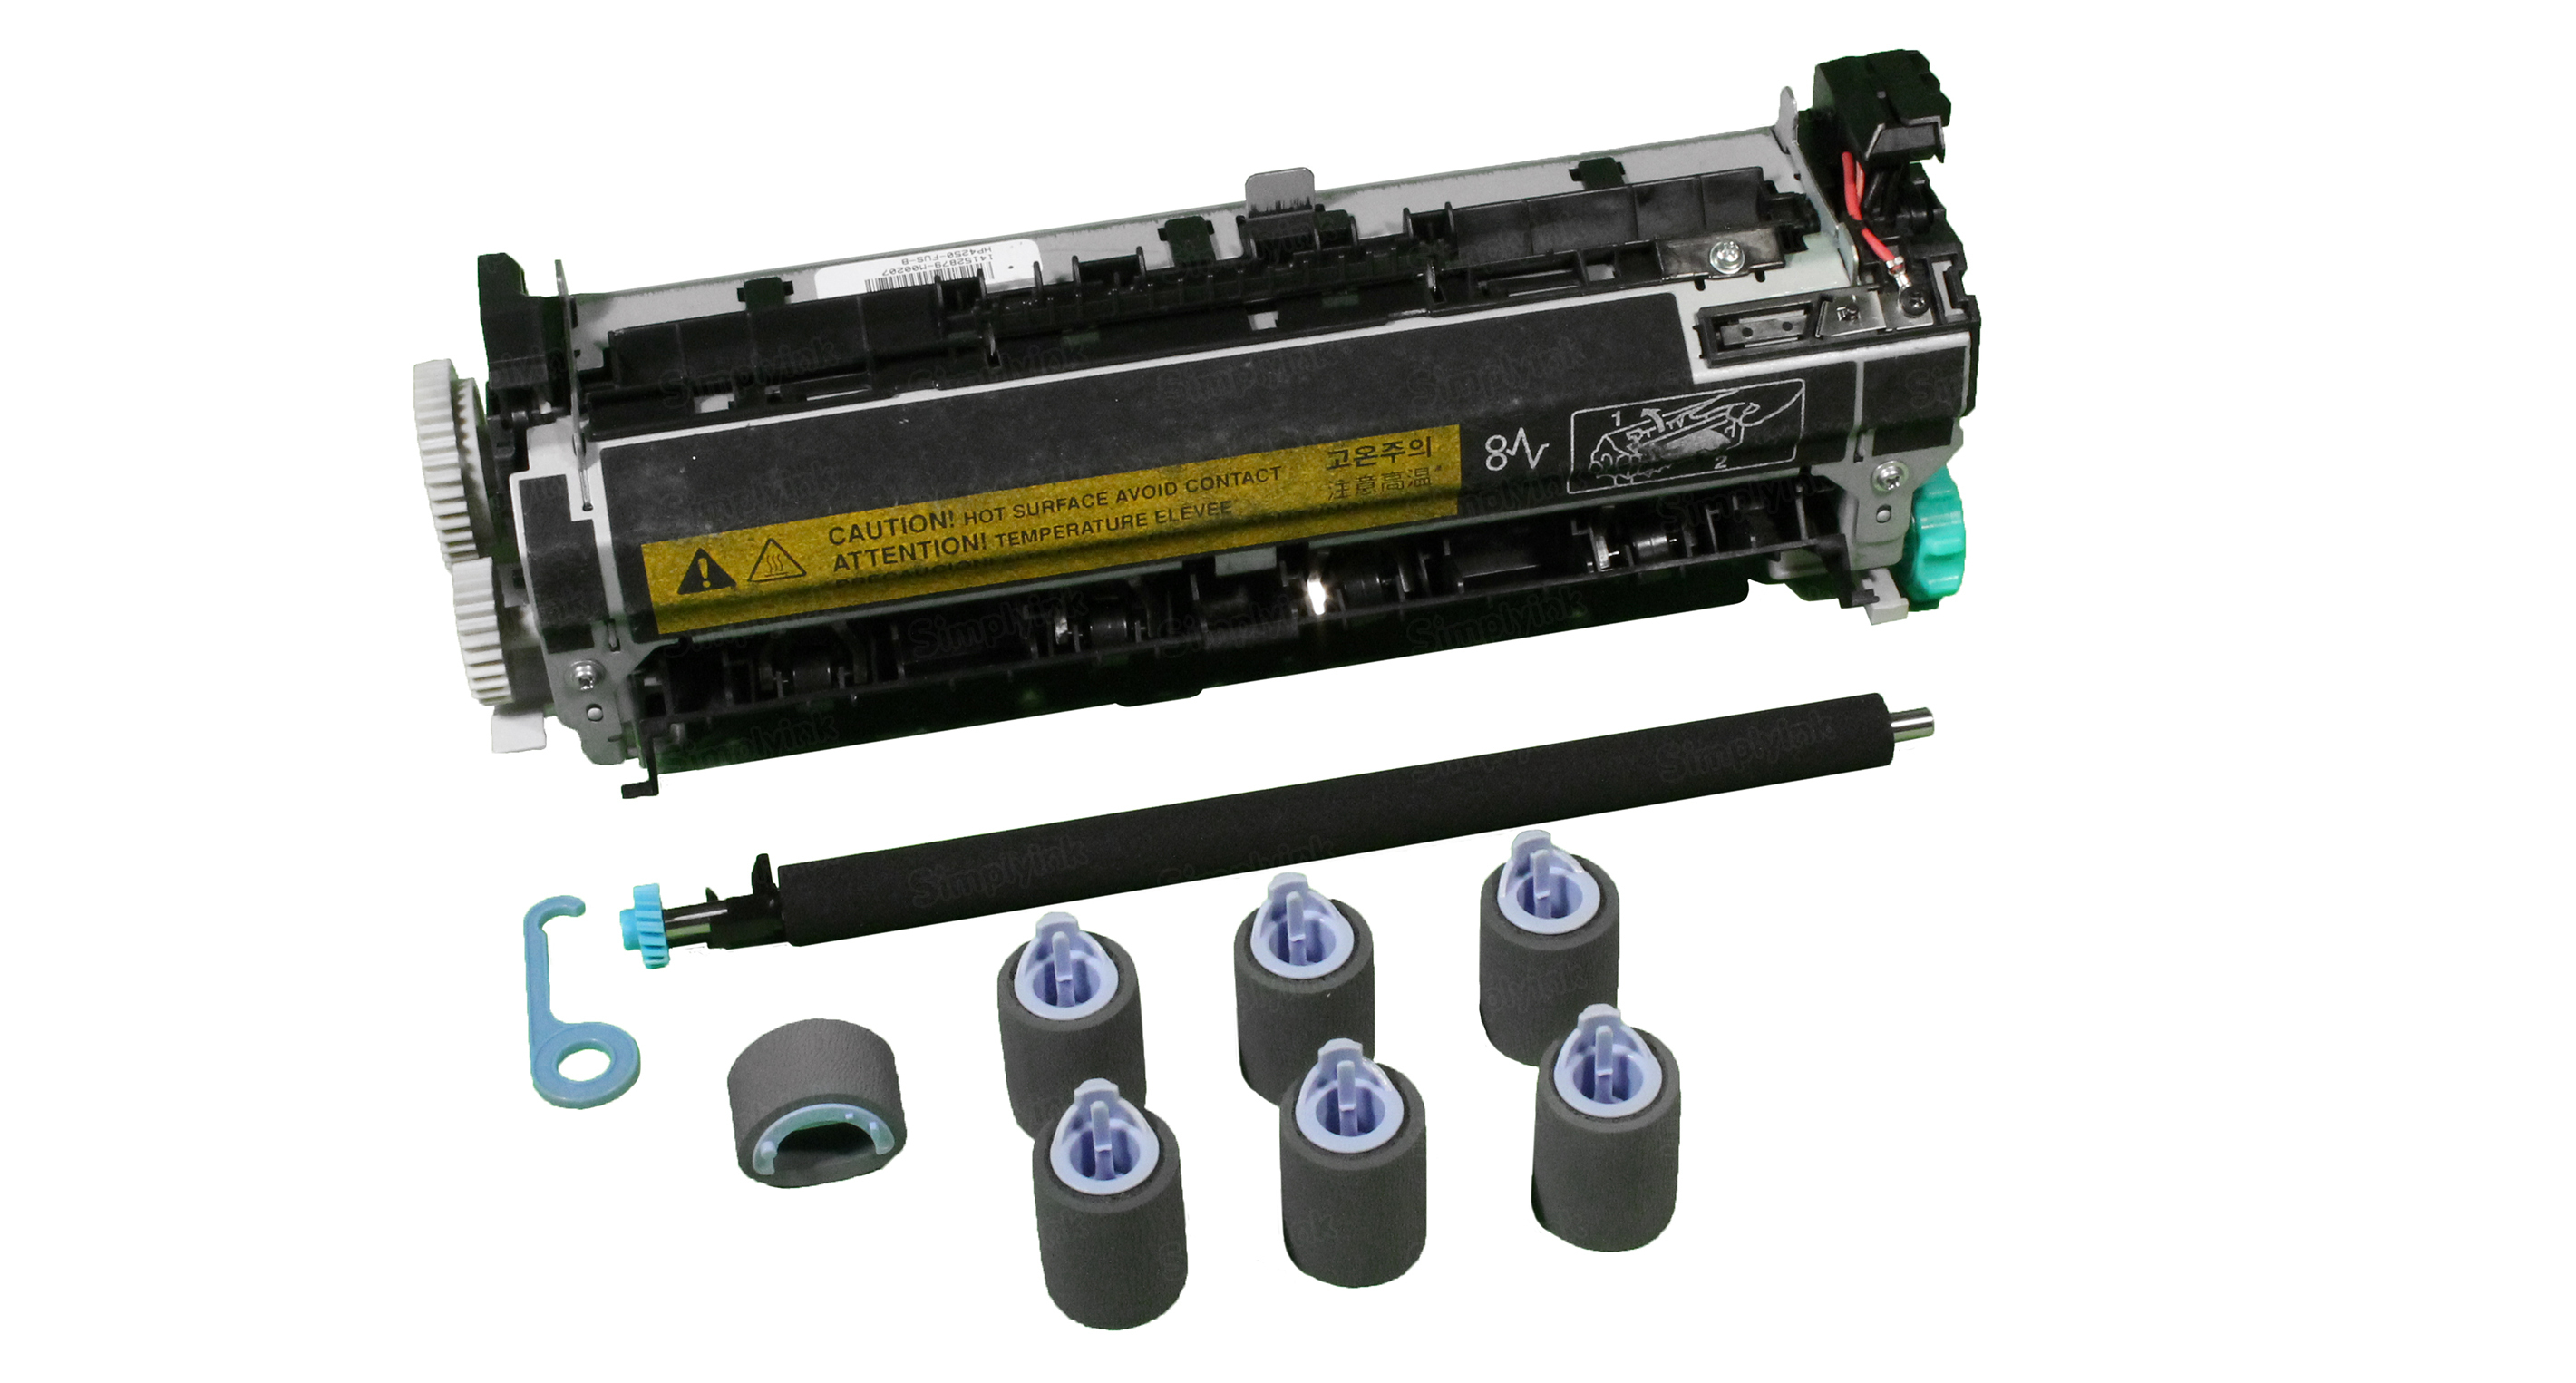 Remanufactured Q5421-67903 for HP Maintenance Kit